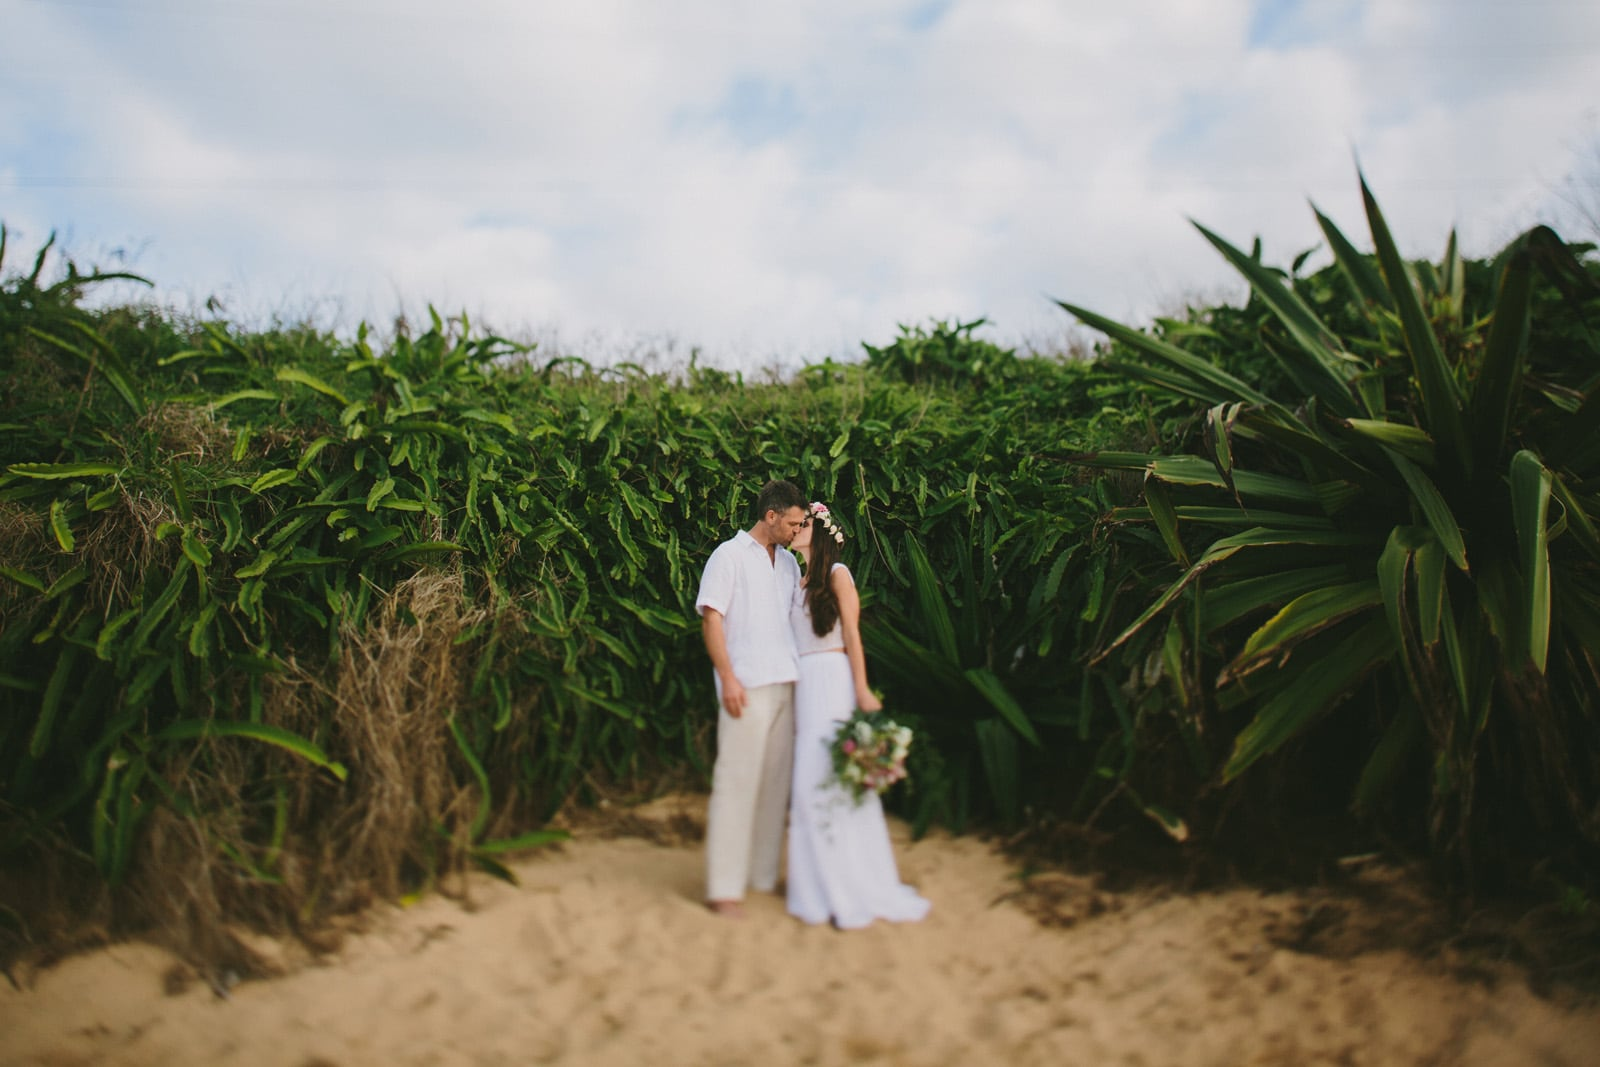 Maui_Wedding_Wailea_Kapalua_Hawaii_Photographer_007